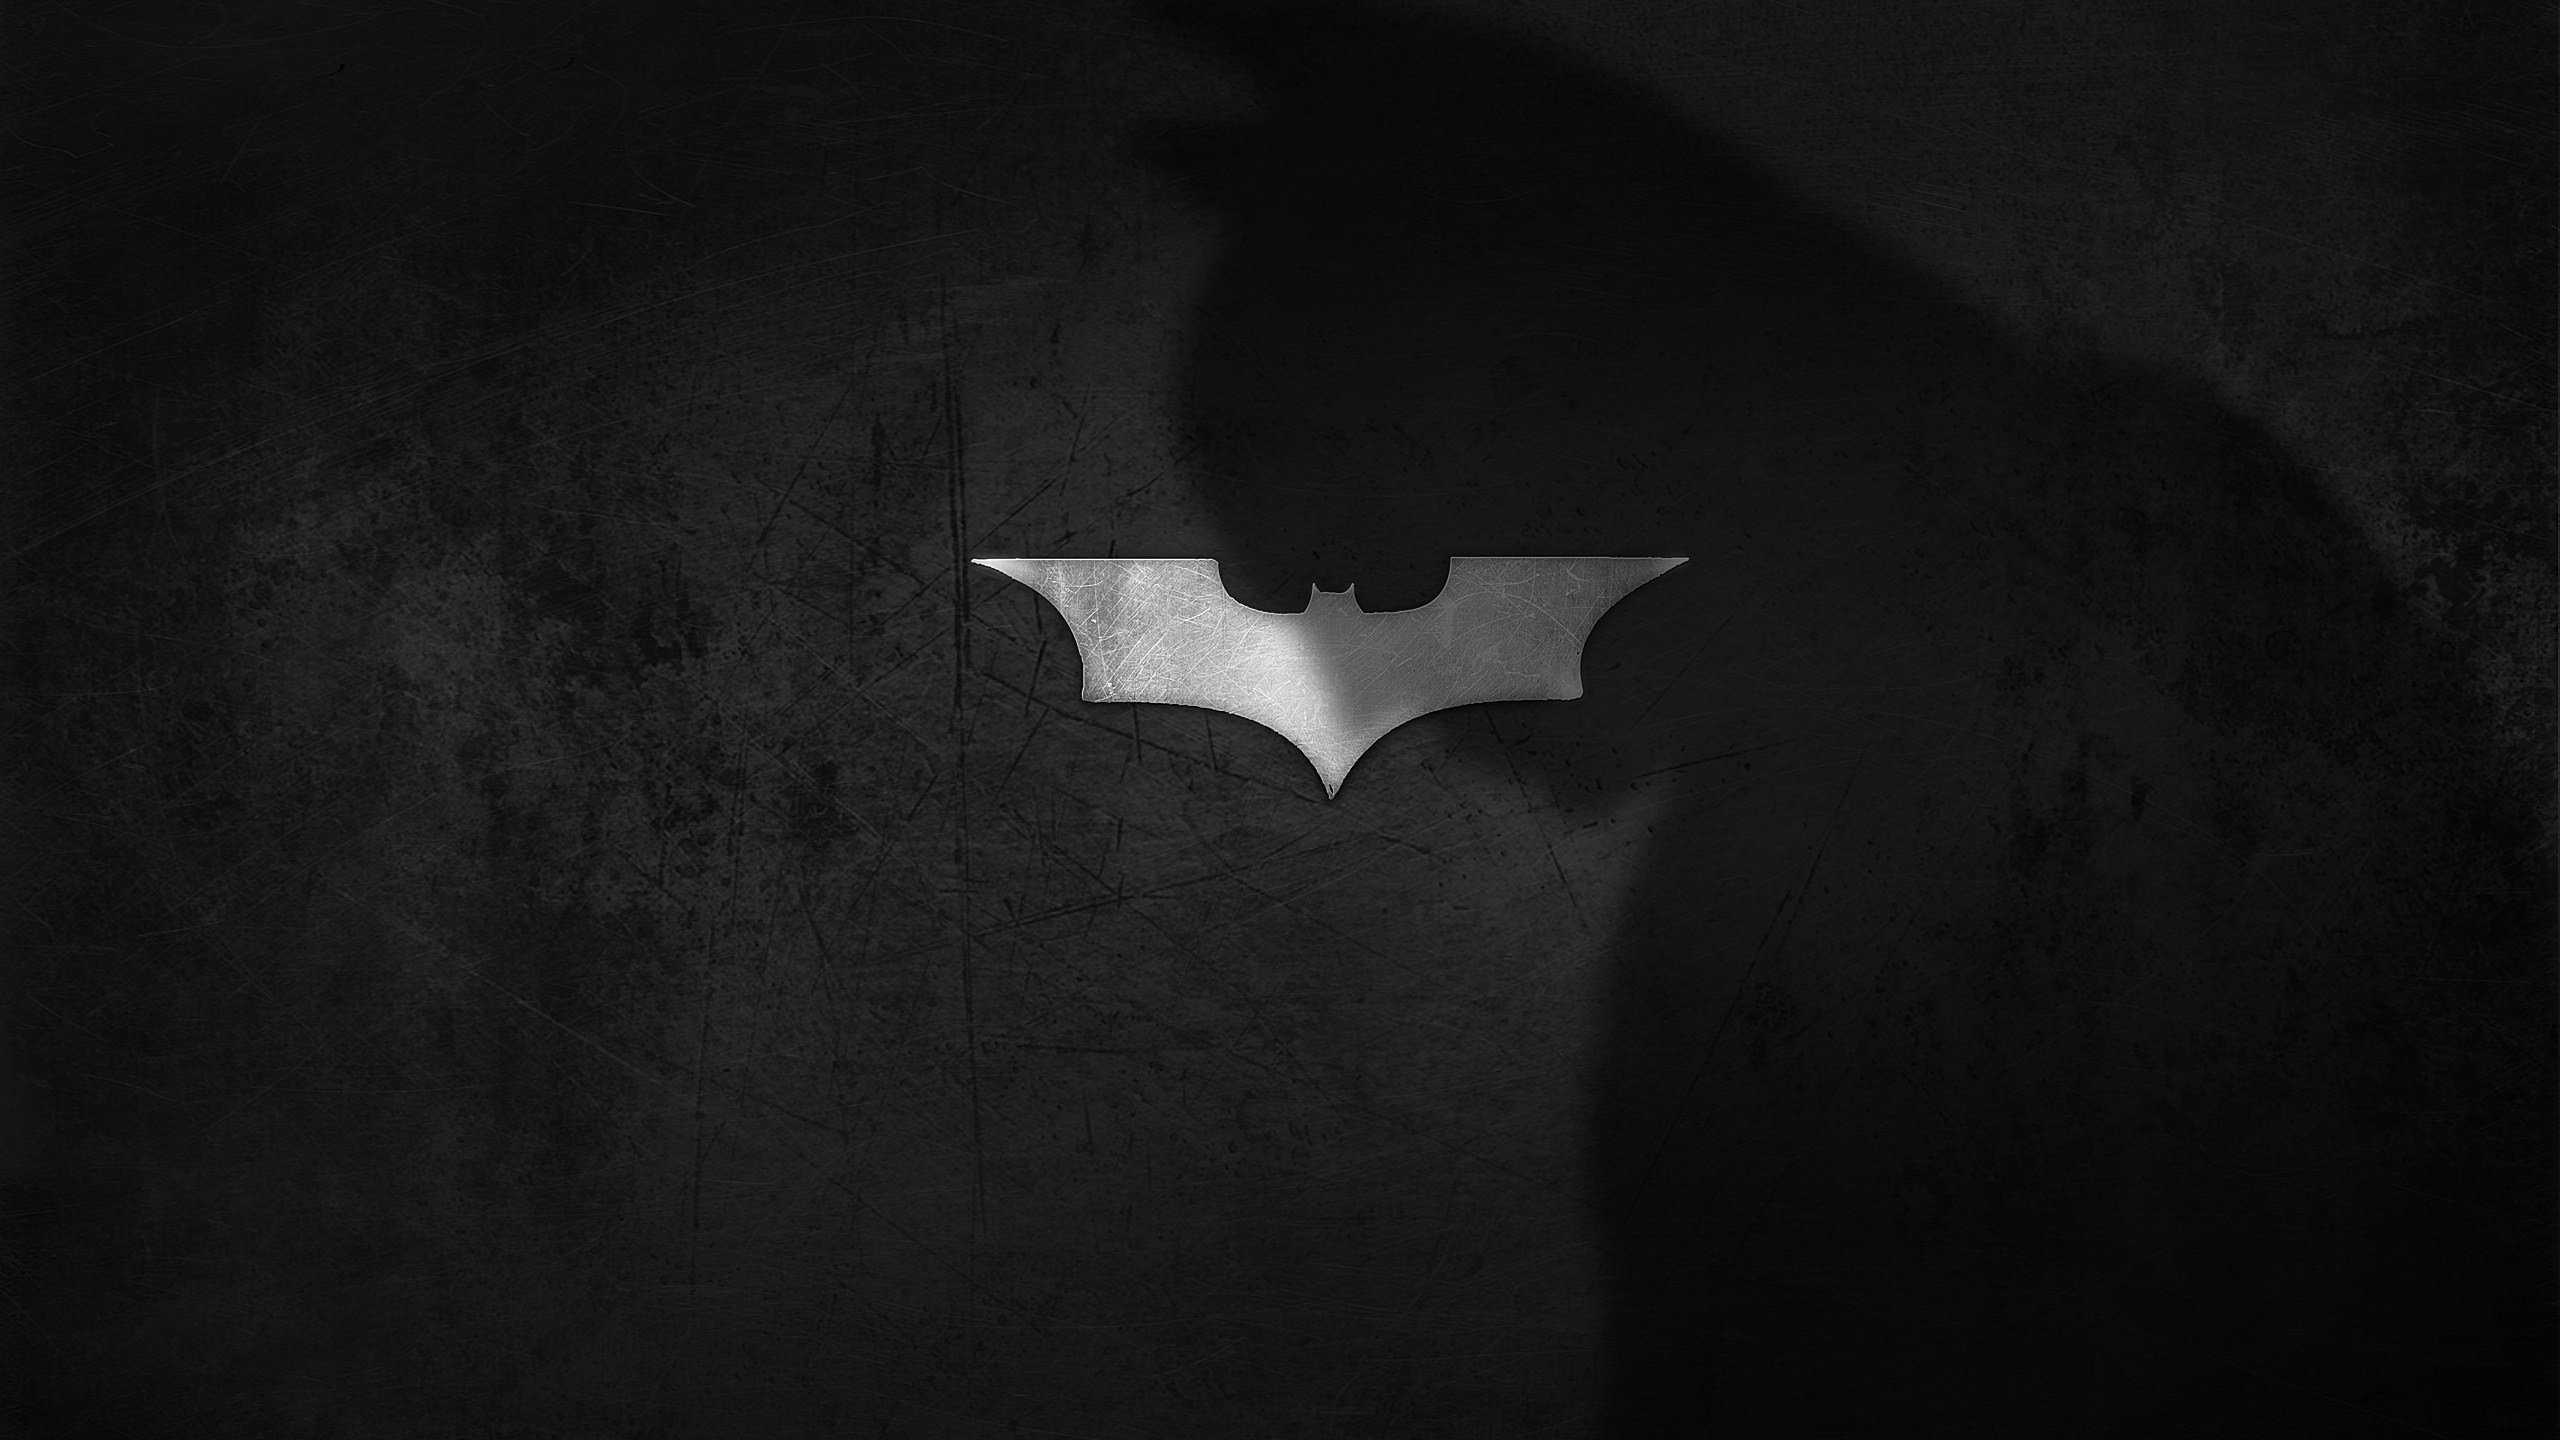 Batman: The Dark Knight Wallpaper for Social Media YouTube Channel Art